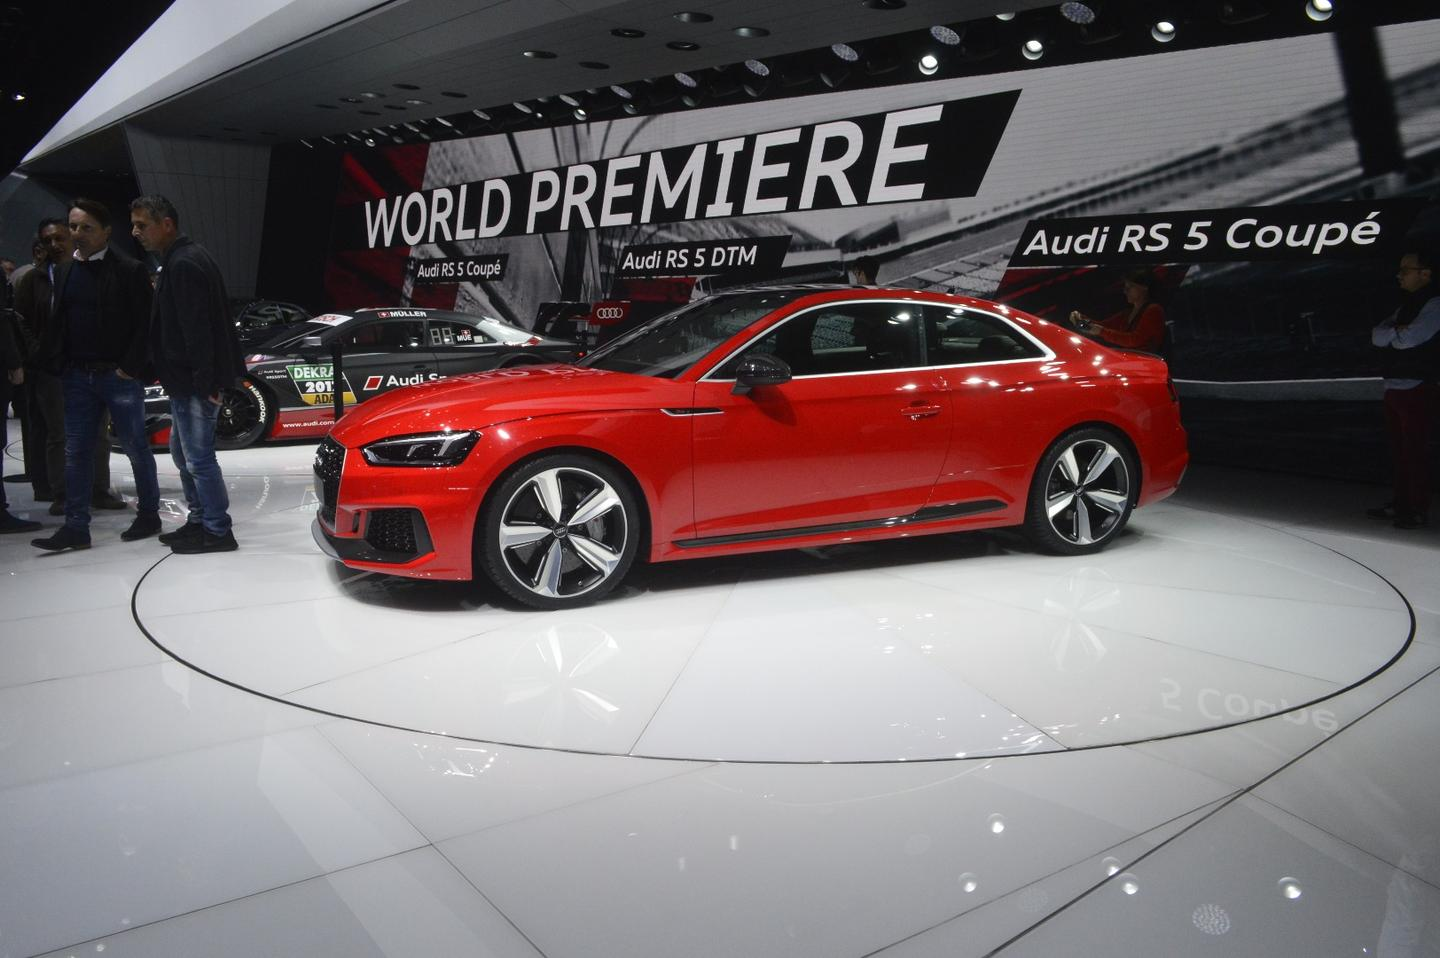 The new Audi RS 5 on show in Geneva